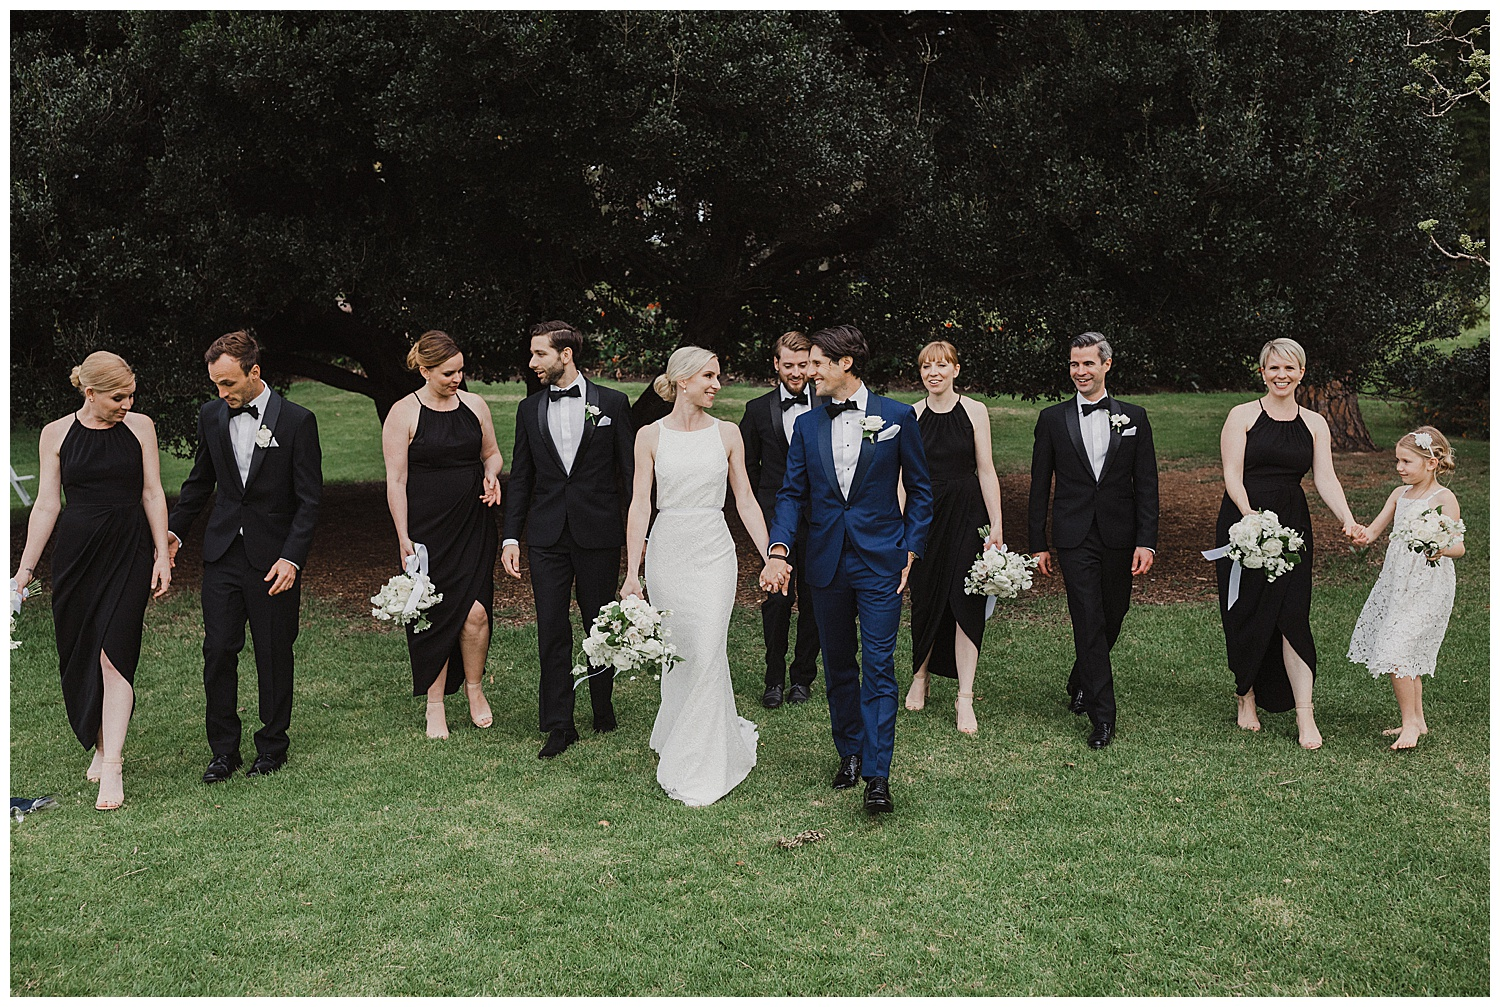 Sydney Bridal Party a the Royal Botanic Gardens during their wedding photoshoot